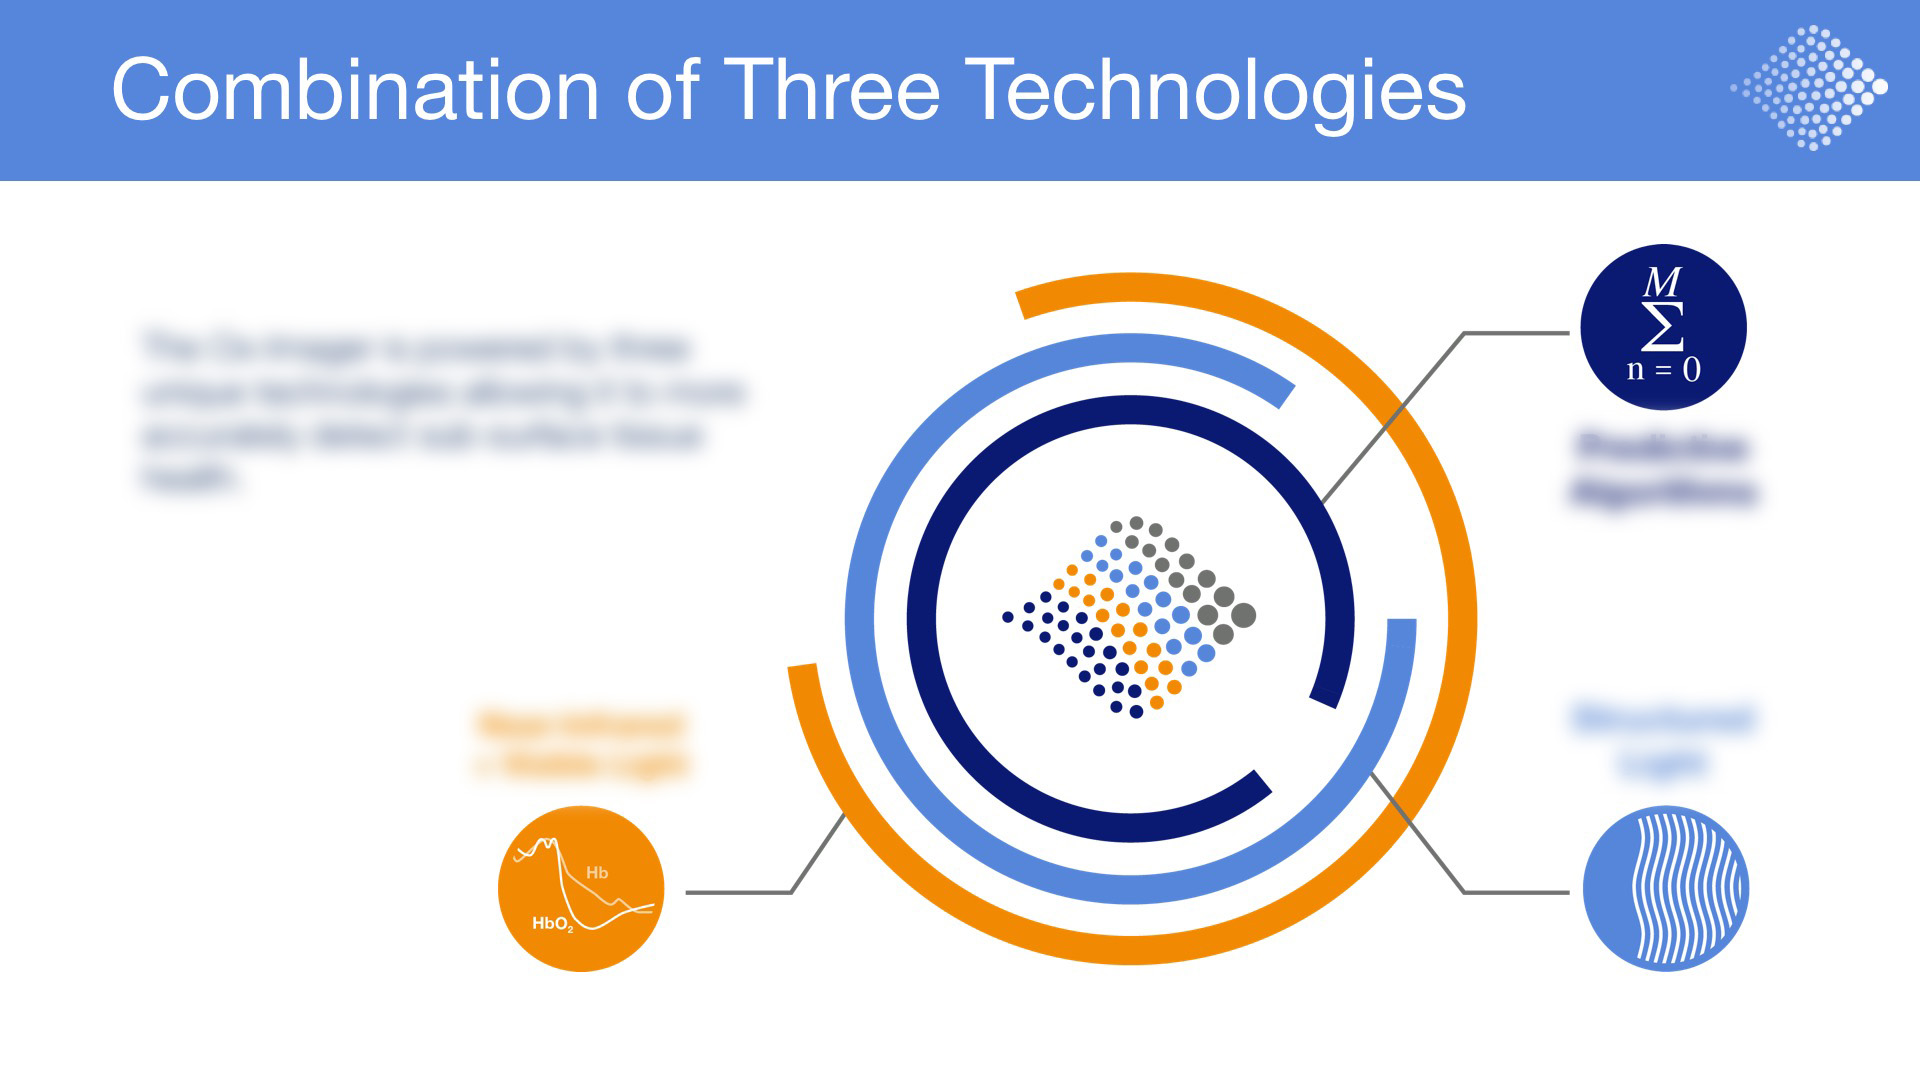 Modulated Imaging Corporate Deck - Combination of Three Technologies Illustrations